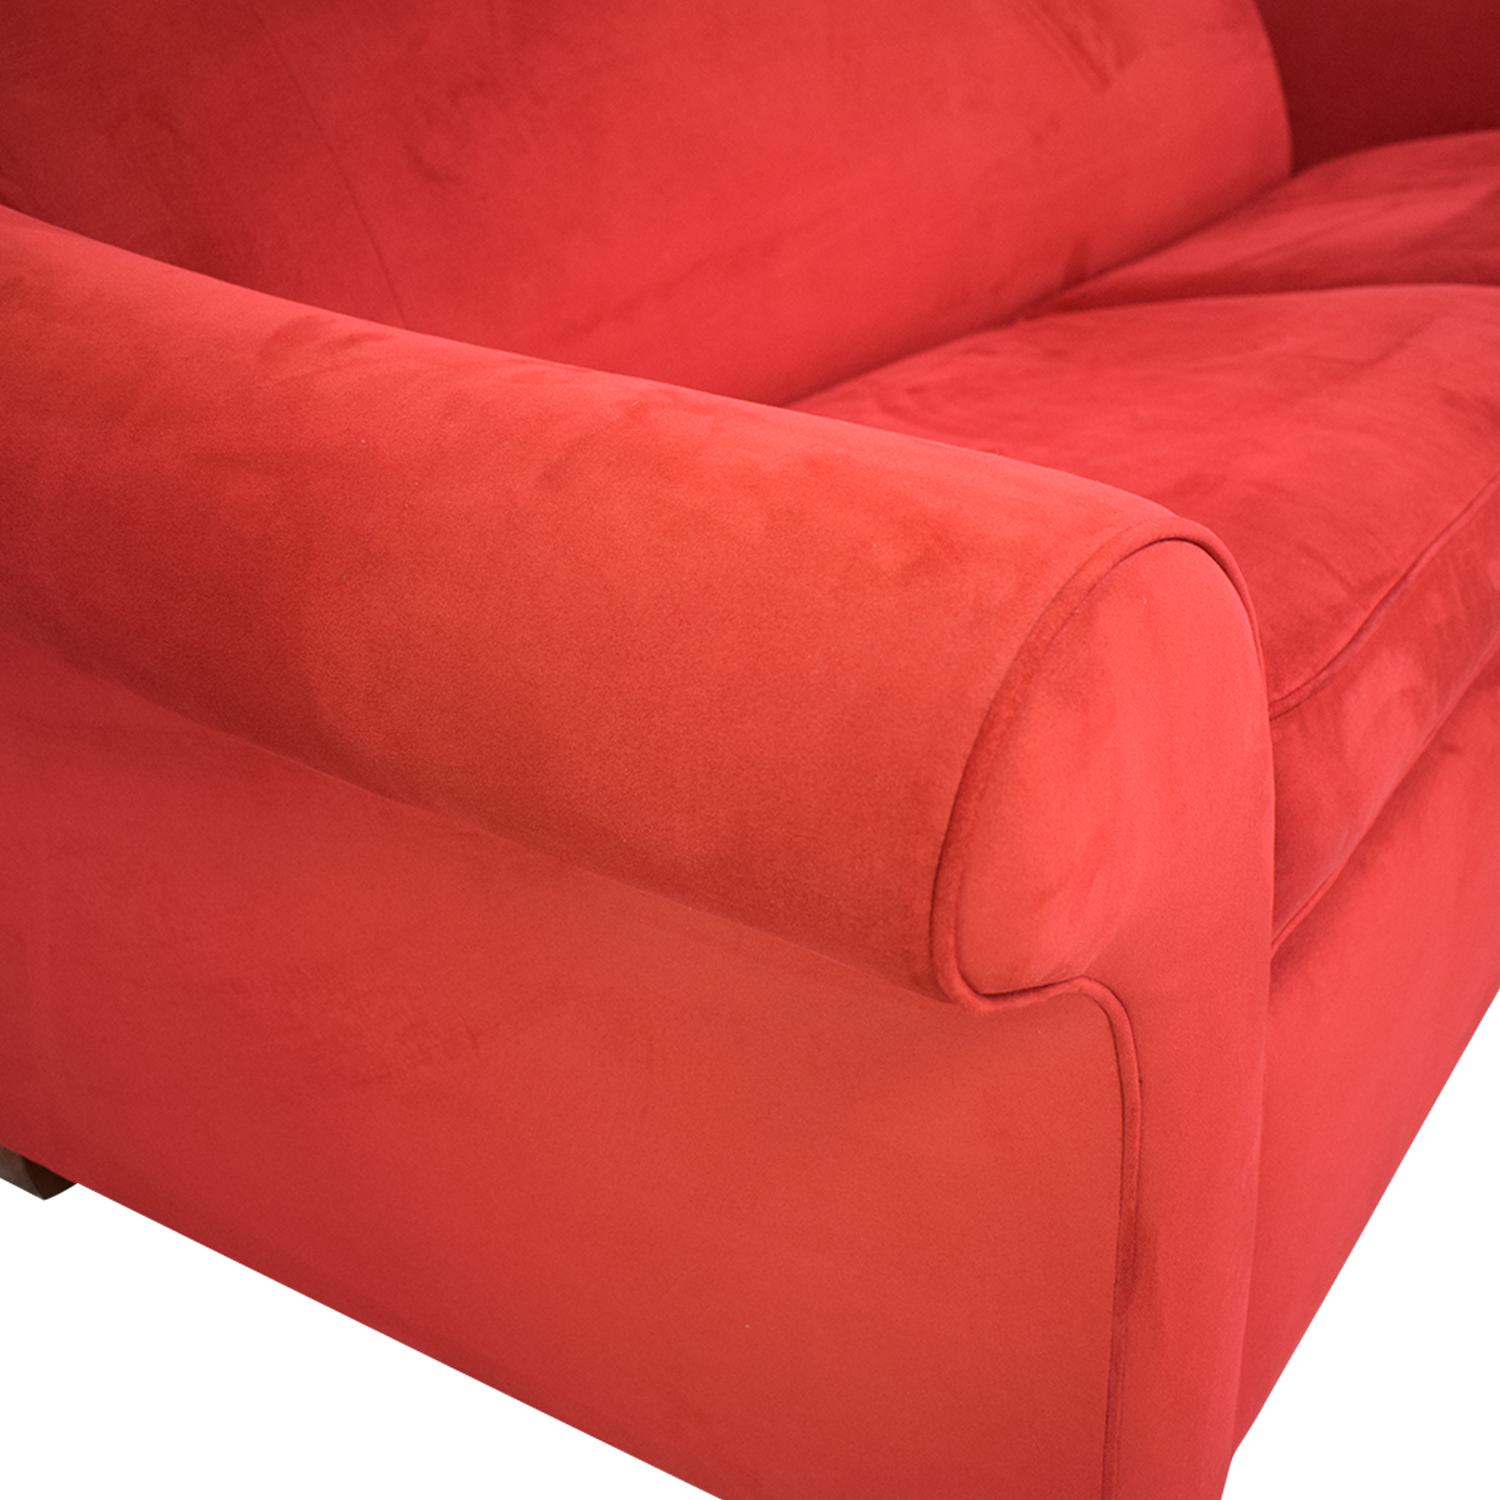 buy Kravet Red Sleeper Sofa Kravet